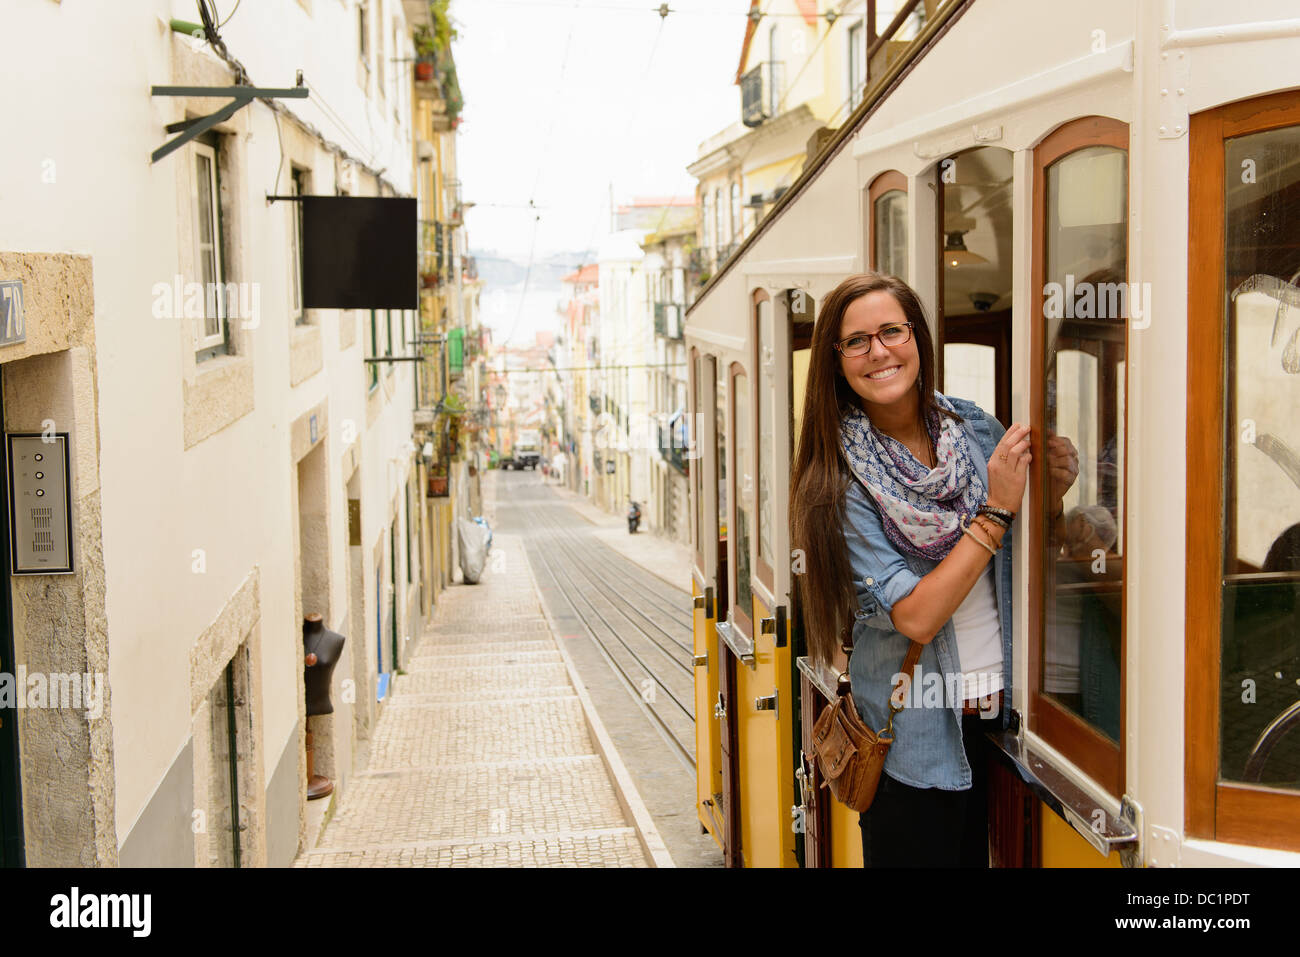 Portrait of young female tourist riding tram in Lisbon, Portugal - Stock Image